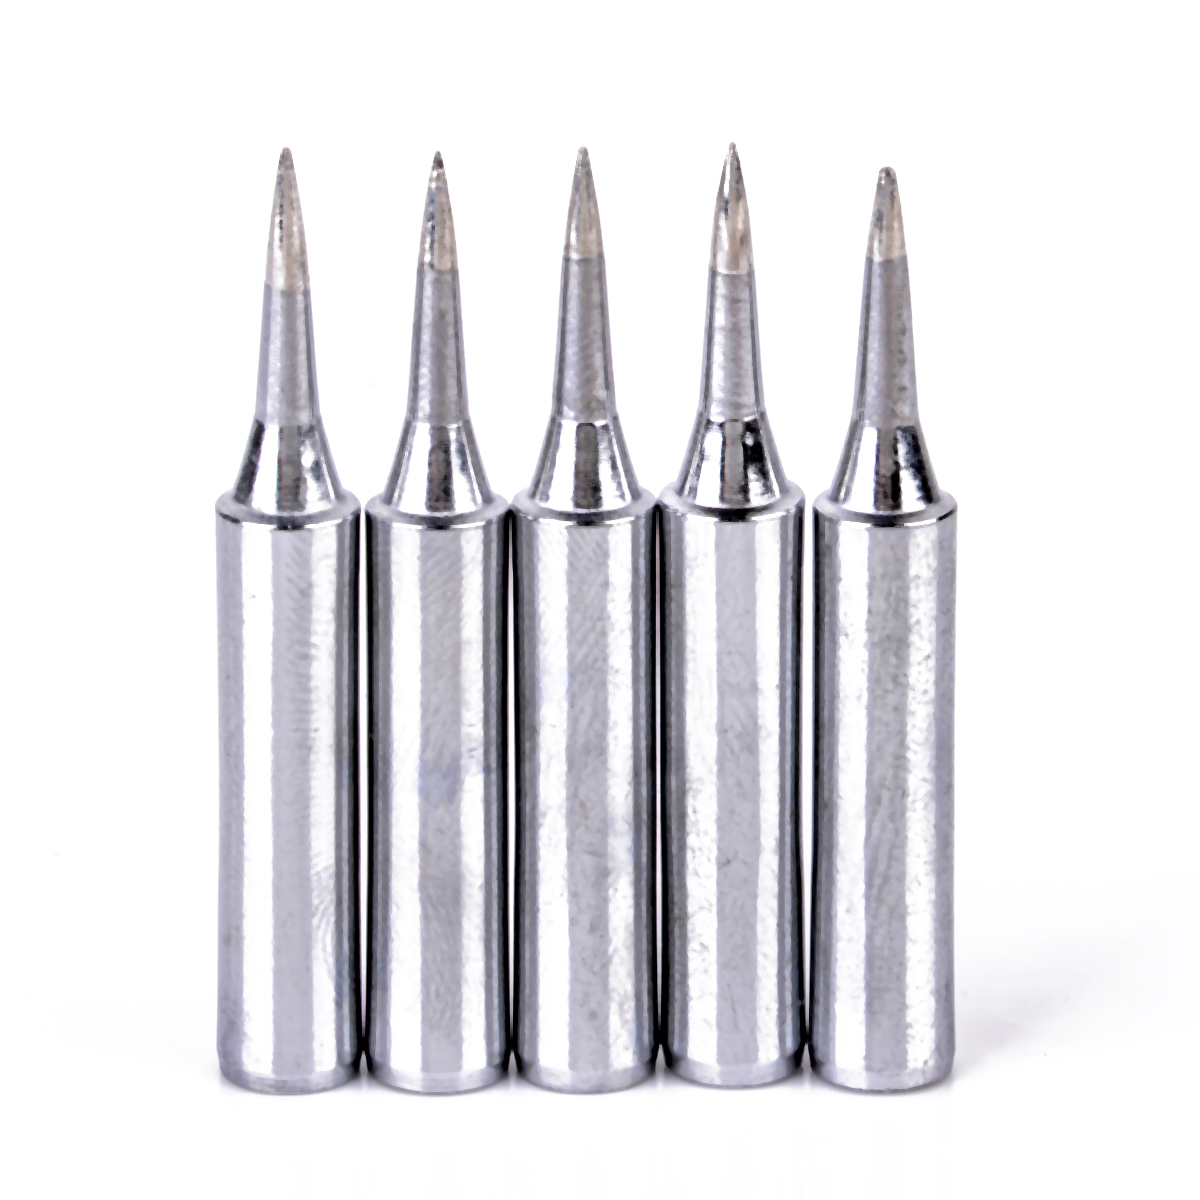 5pcs 900m-T-I Soldering Iron Tips Lead Free Replacement Soldering Tools Solder Iron Tips Head For Soldering Repair Tool